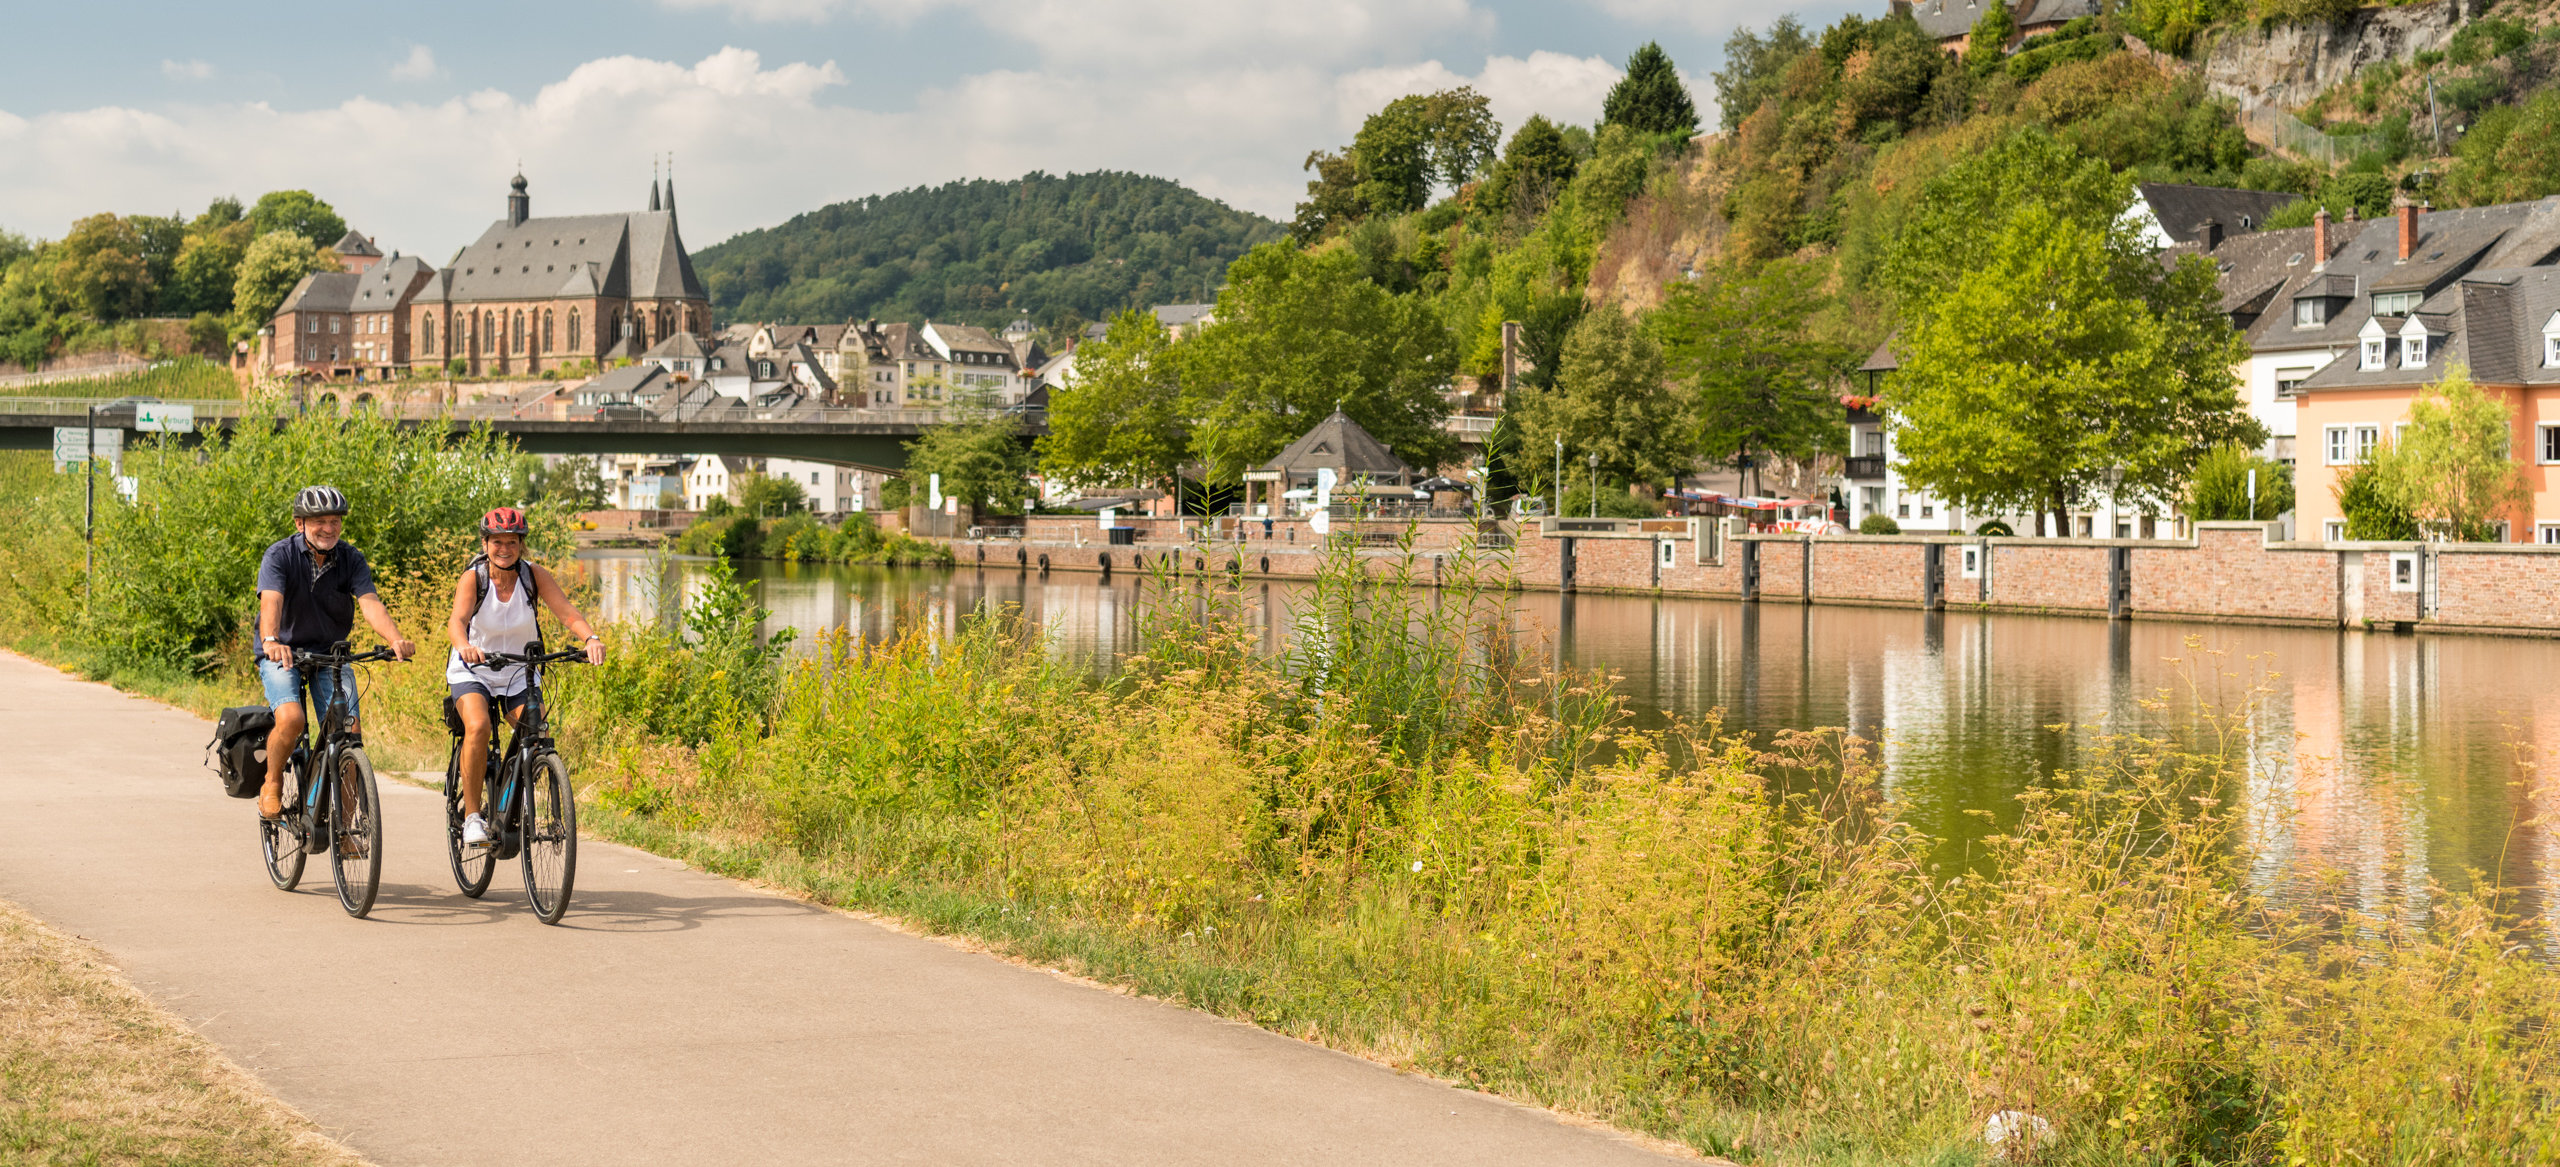 Cycling along the Saar river near Saarburg, Moselle